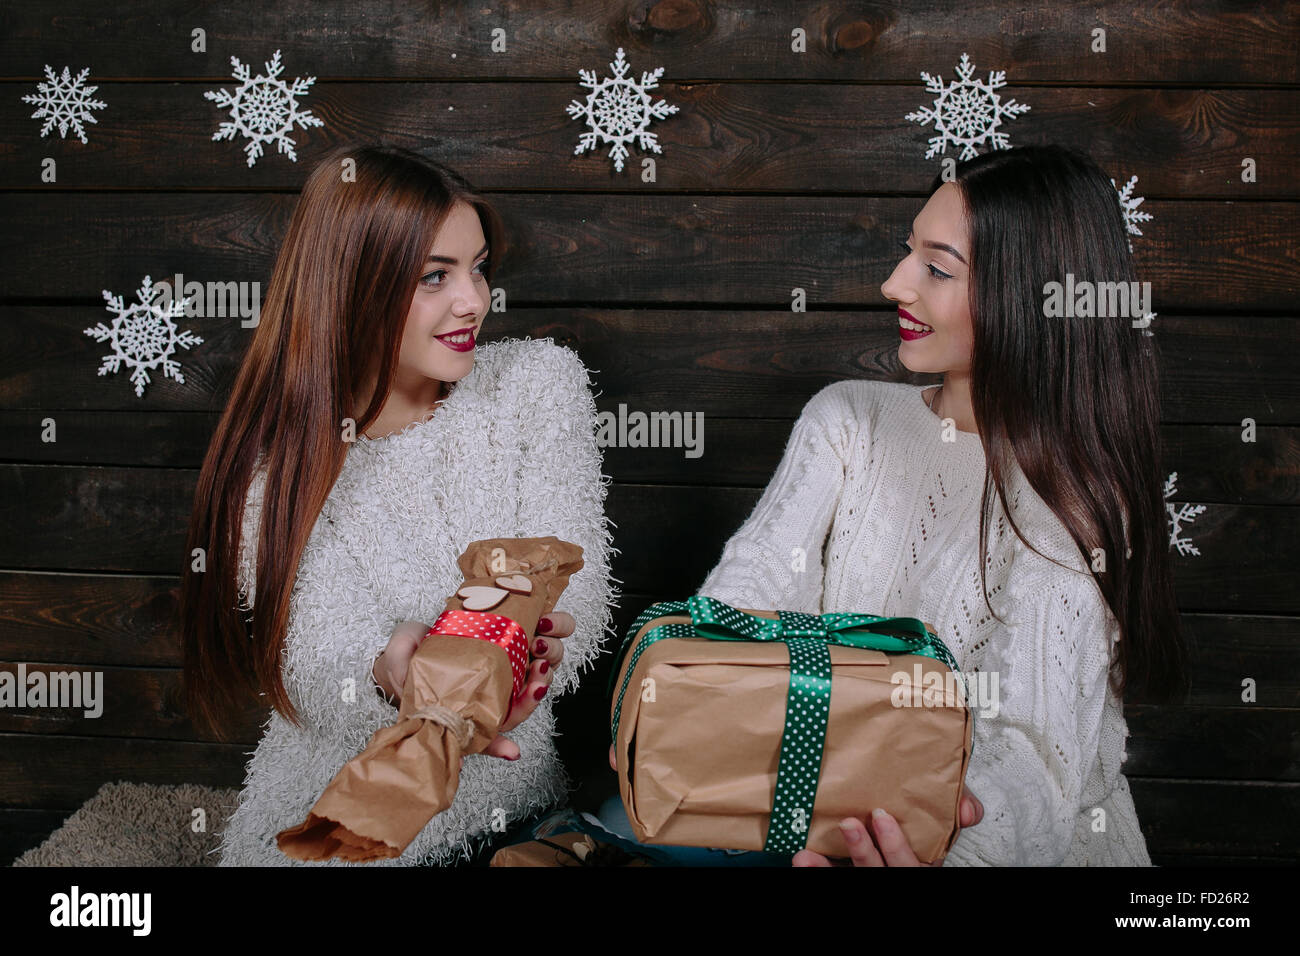 Two beautiful girls offer gifts to camera - Stock Image